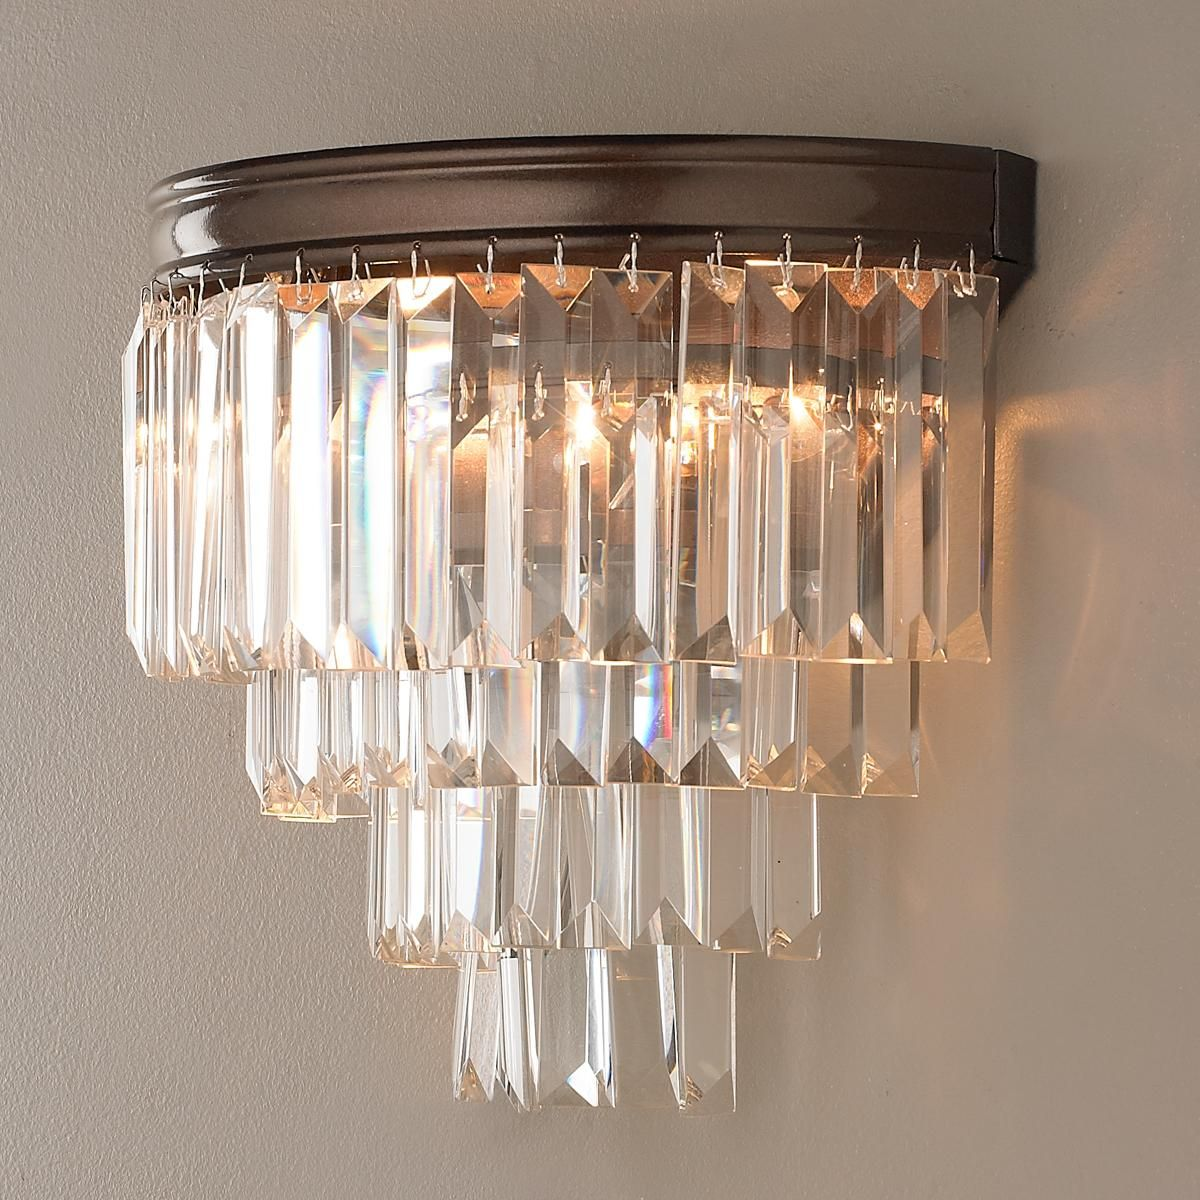 Modern Faceted Glass Layered Wall Sconce Crystal Wall Lighting